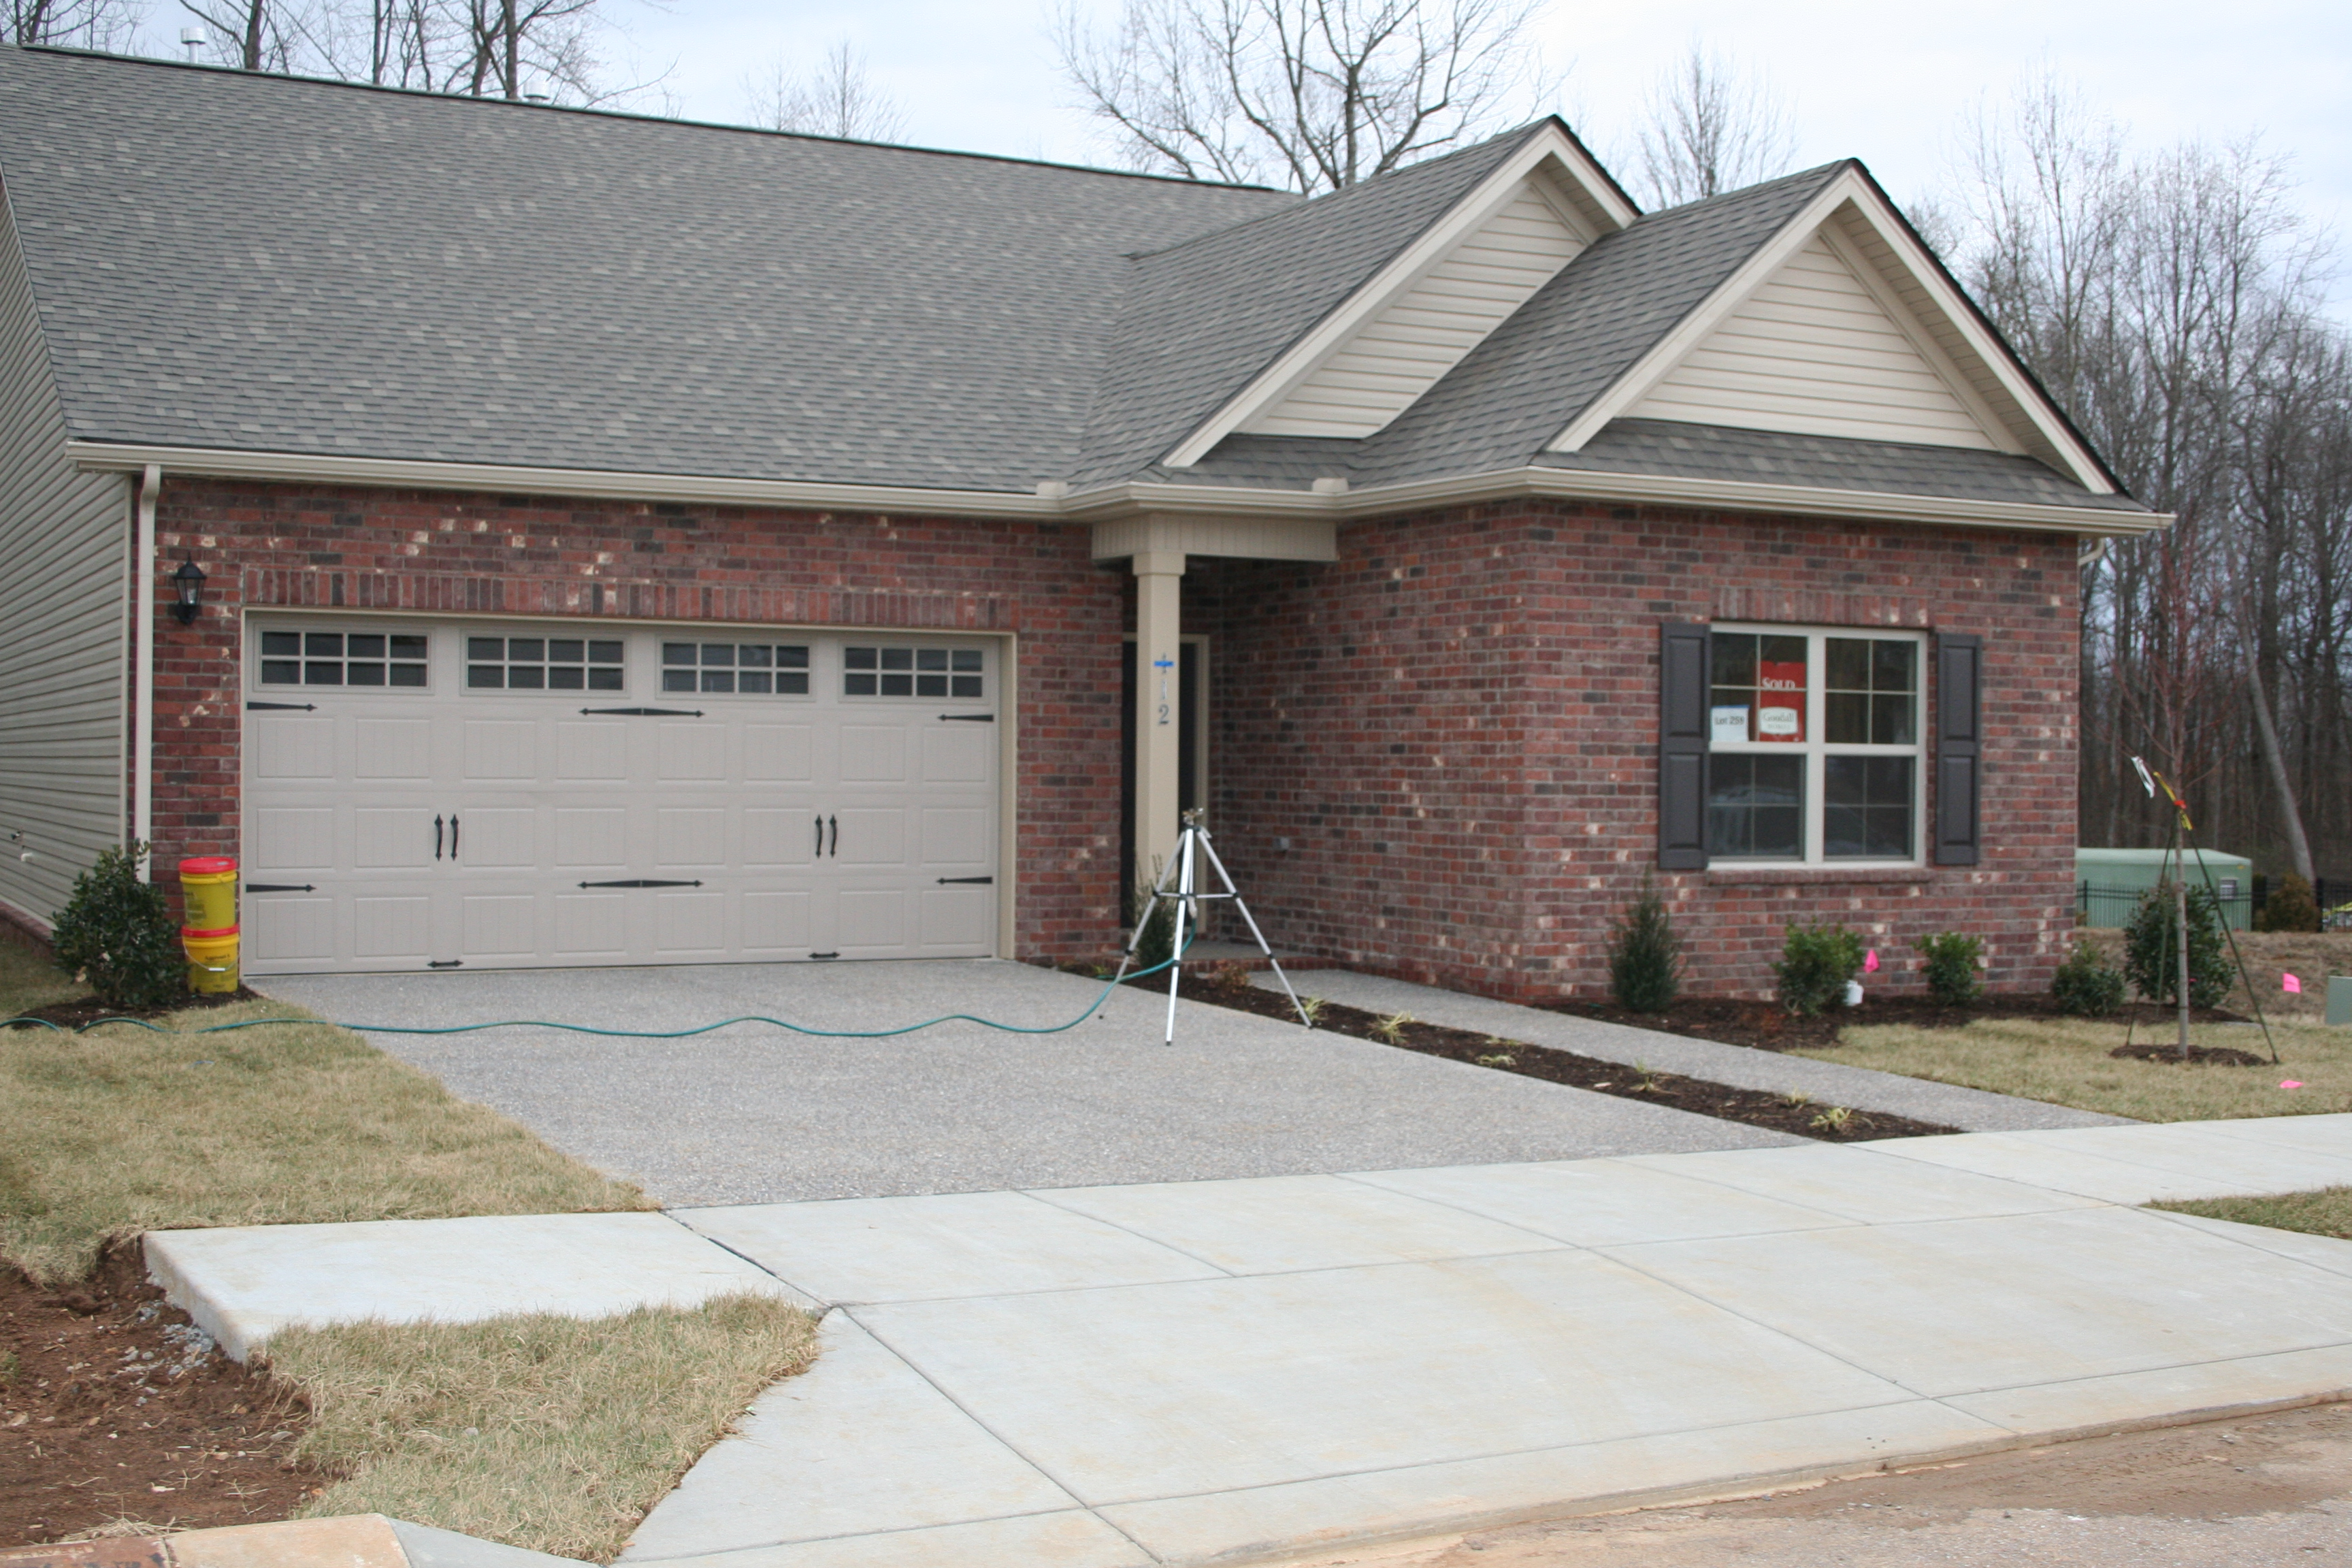 NEW CONSTRUCTION, JUST LISTED...112 Bexley Way, White House TN